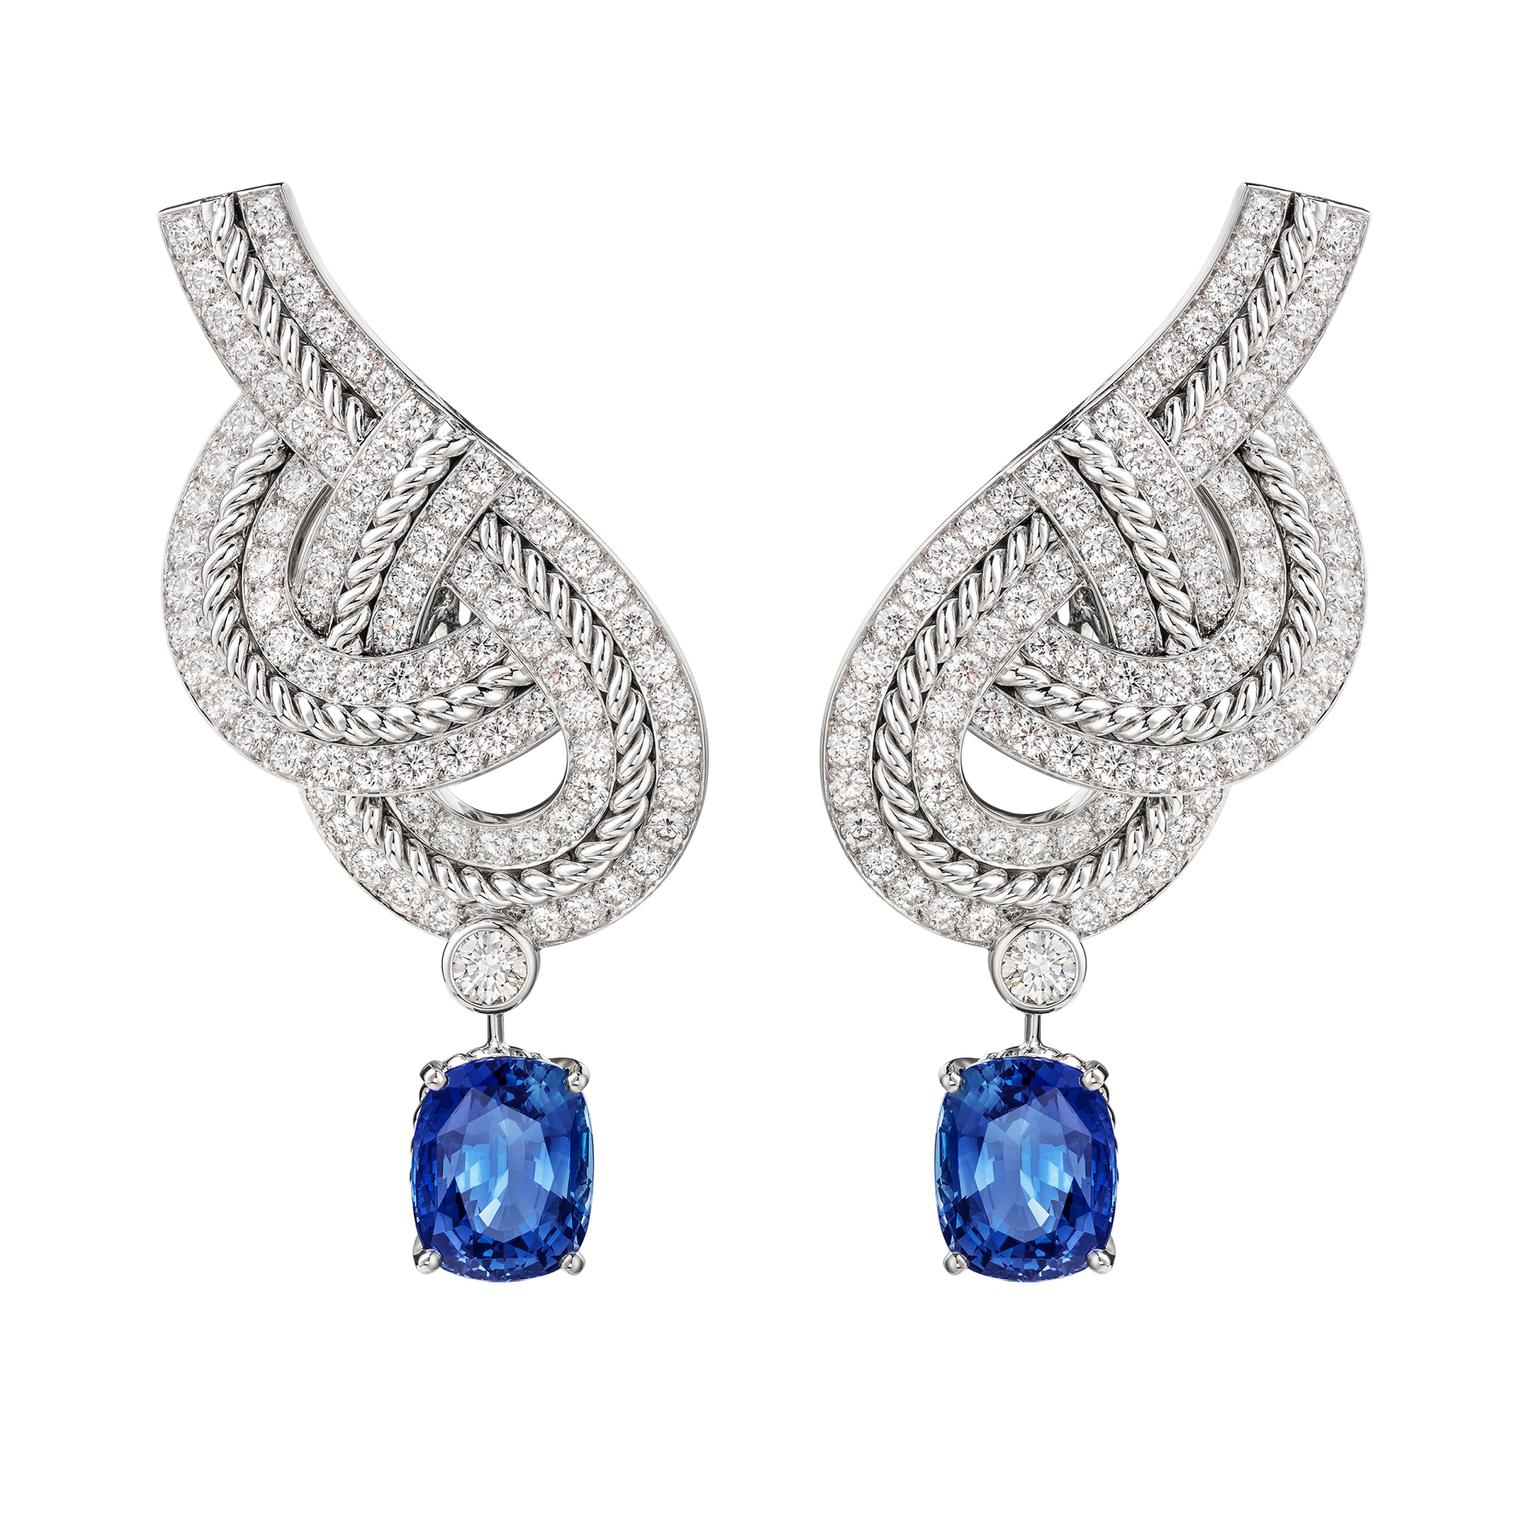 Chanel Flying Cloud Azurean Braid earrings